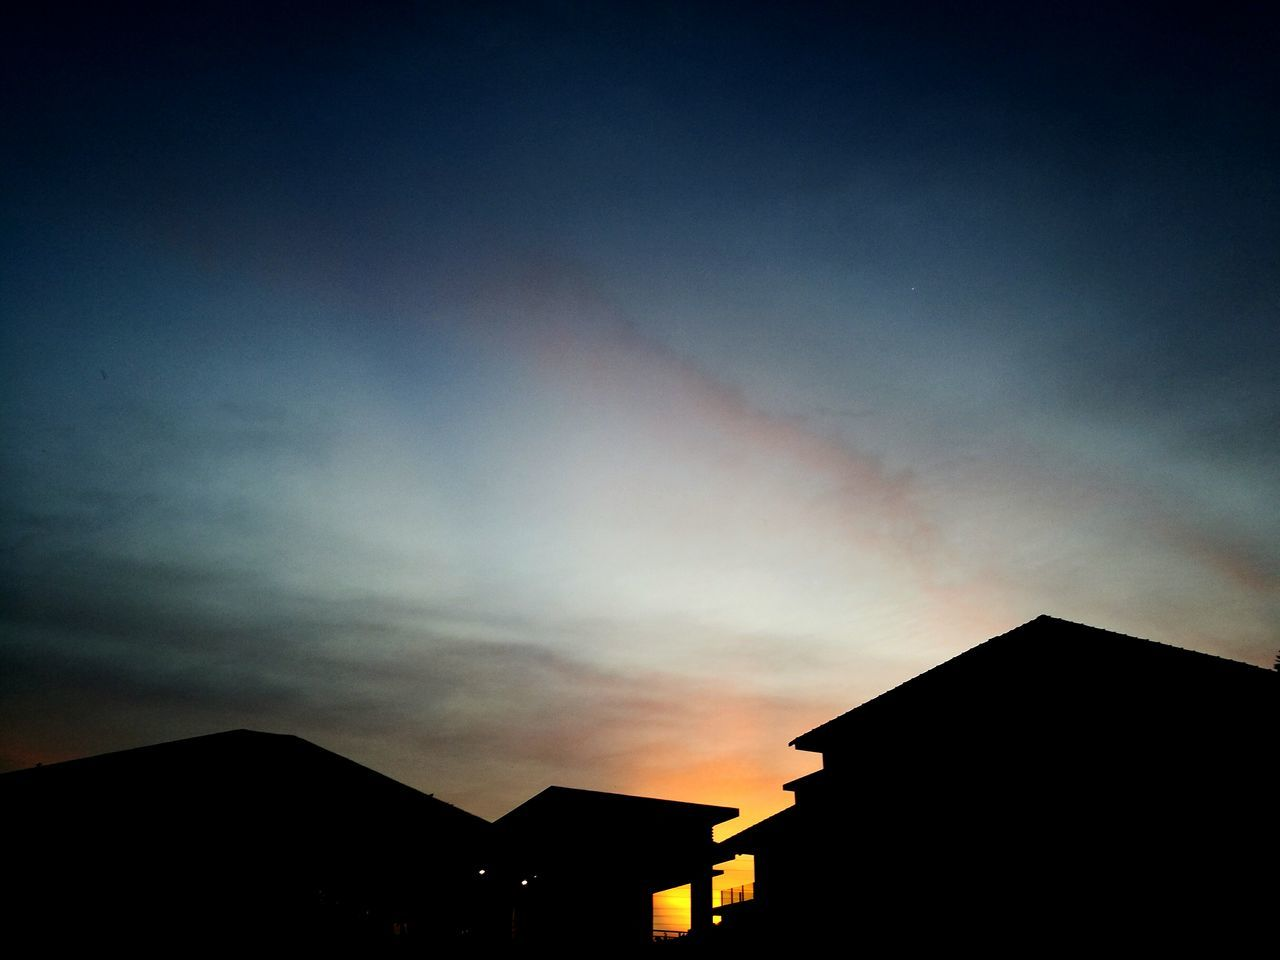 built structure, silhouette, building exterior, architecture, sky, sunset, house, no people, low angle view, outdoors, cloud - sky, roof, beauty in nature, nature, scenics, day